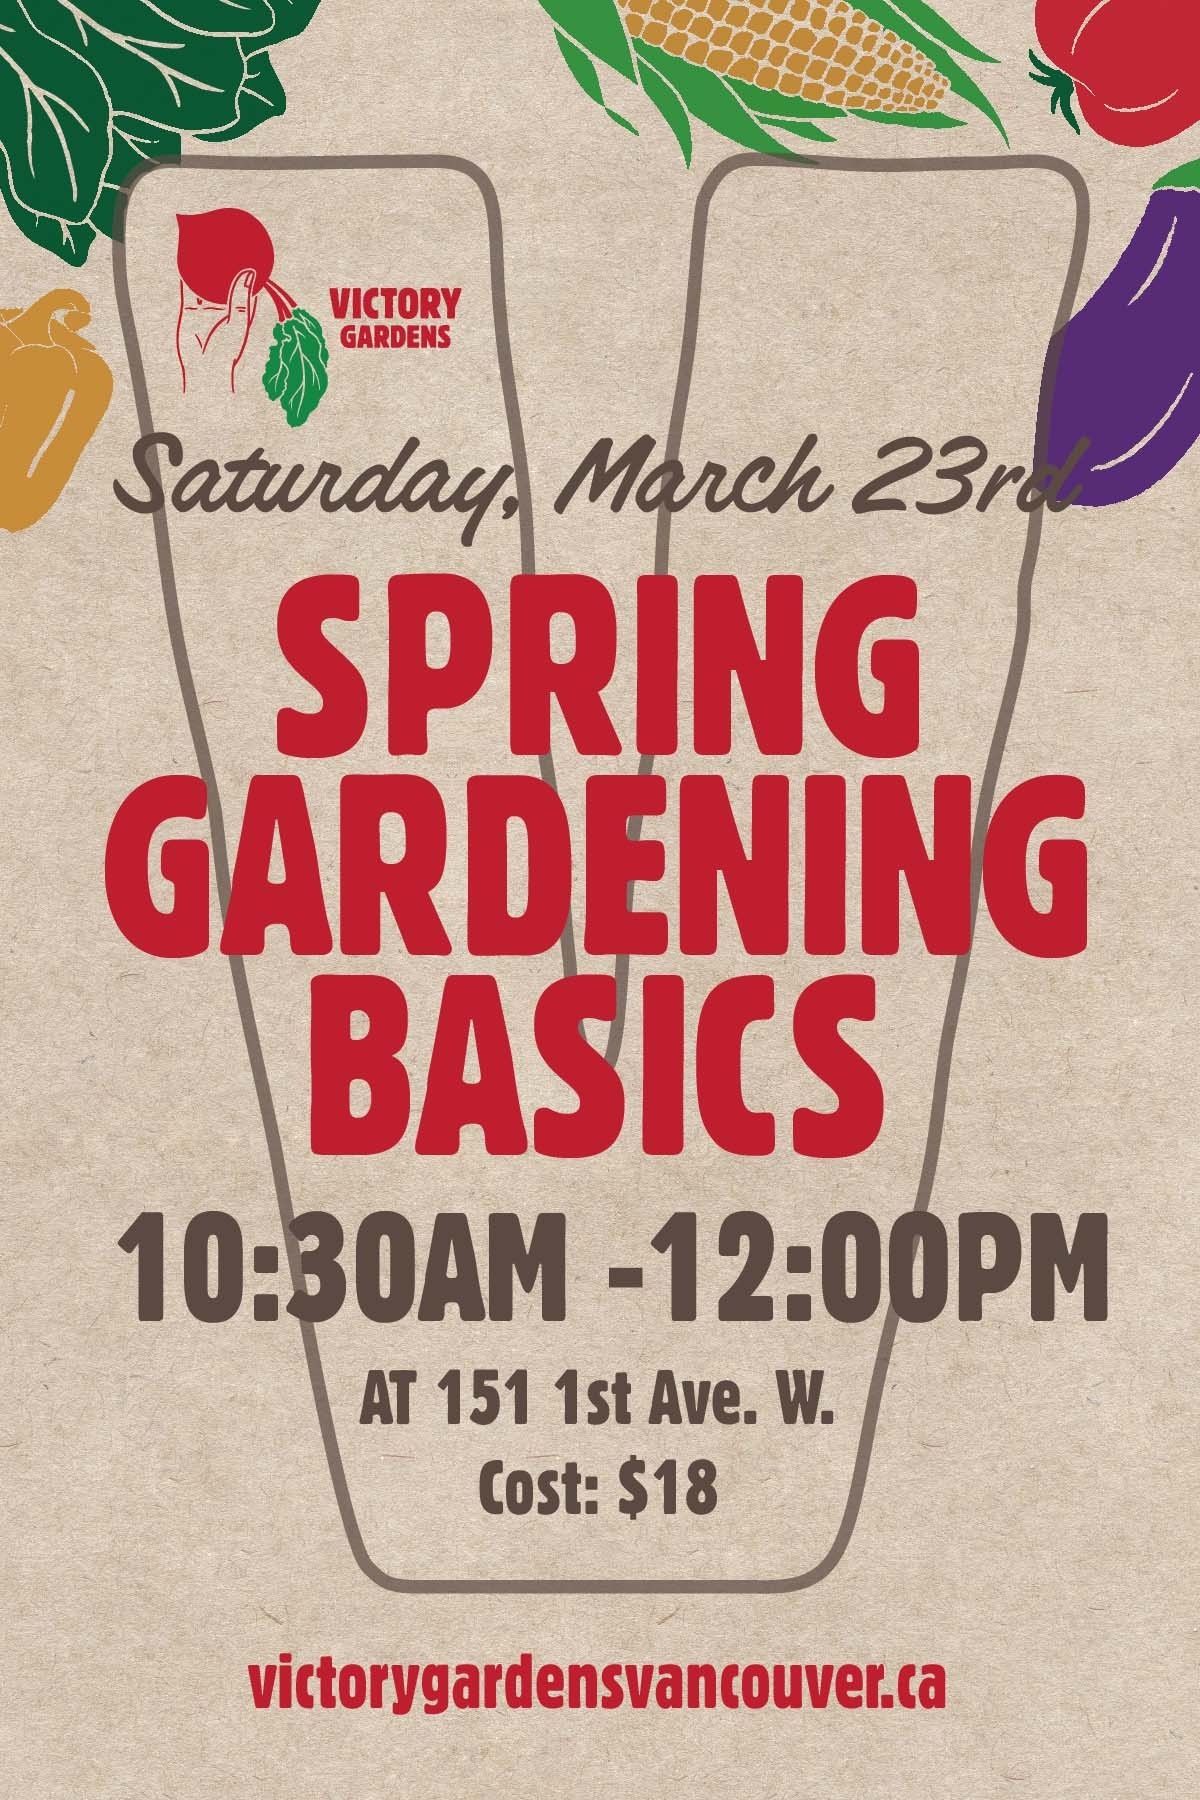 Spring is in the air and our friends over at Victory Gardens are hosting a gardening workshop on March 23rd. This 101 style lecture and demonstrative workshop is geared towards getting you started this Spring. You'll learn the basics of soil, compost, timing and planning, containers, sowing seeds and transplanting. Each participant will receive a pack of seeds and some notes on Spring Gardening Basics.  Sign up here.